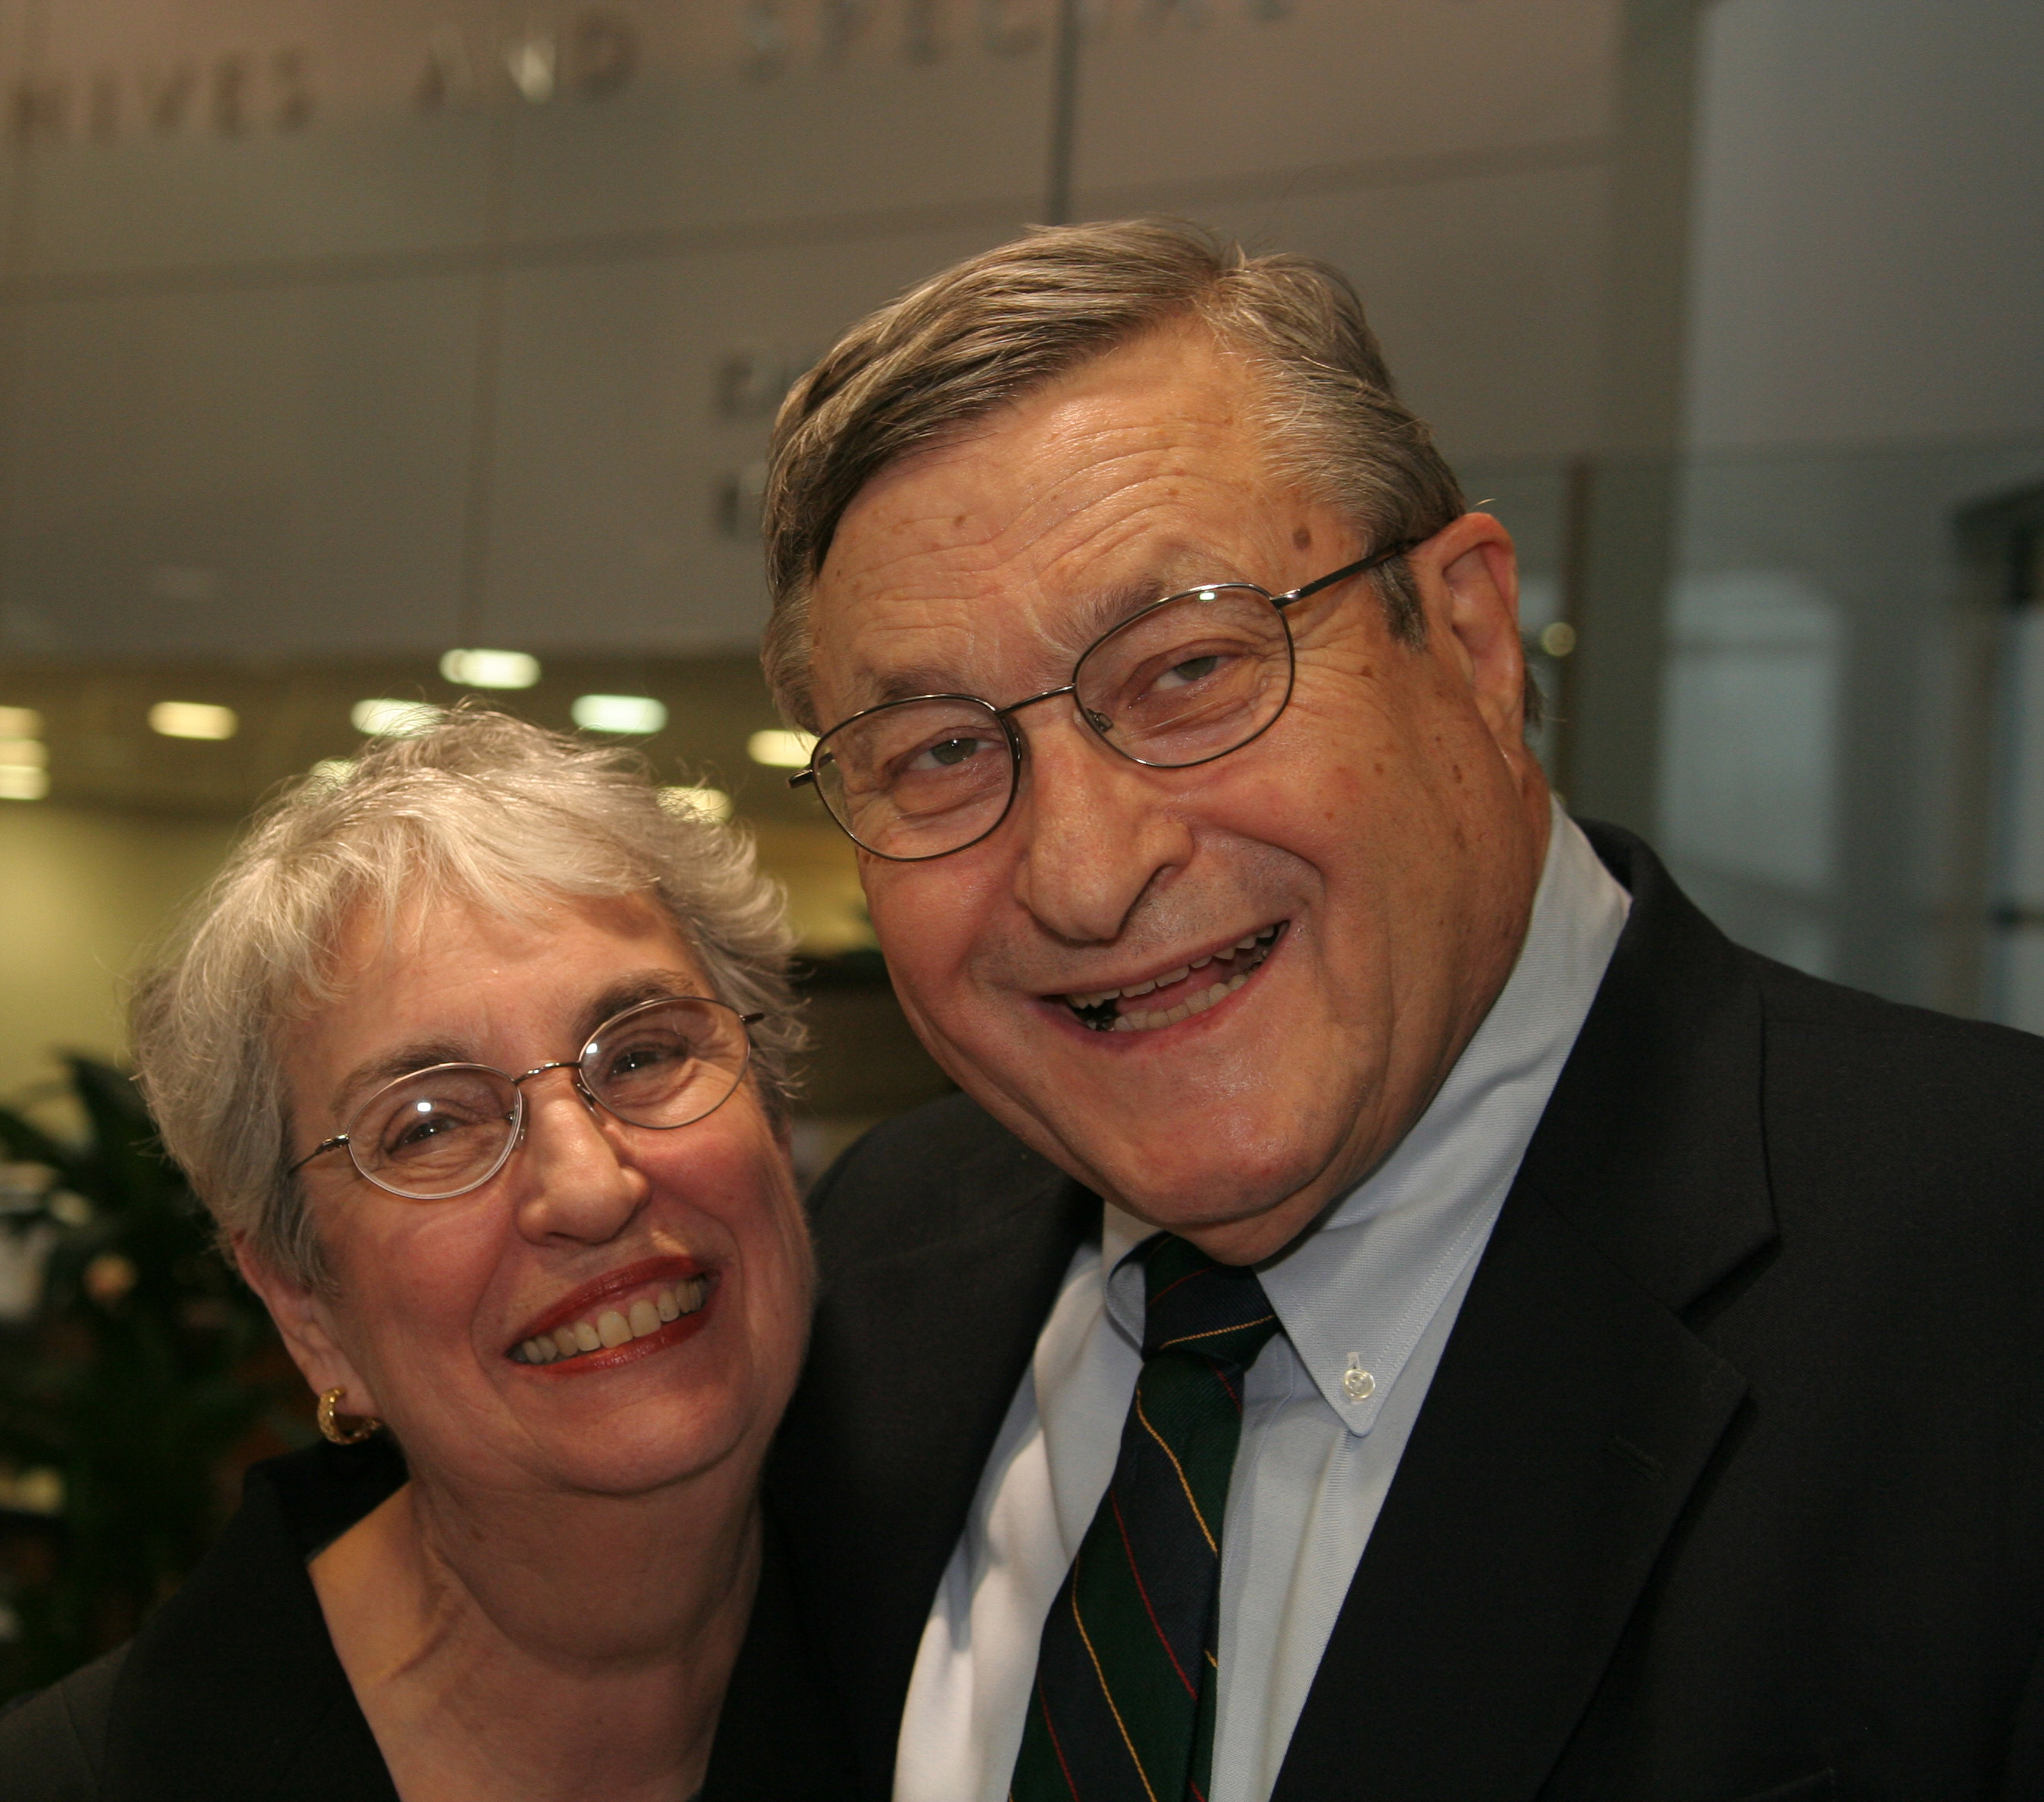 The Parzens smile together at a tribute in their honor